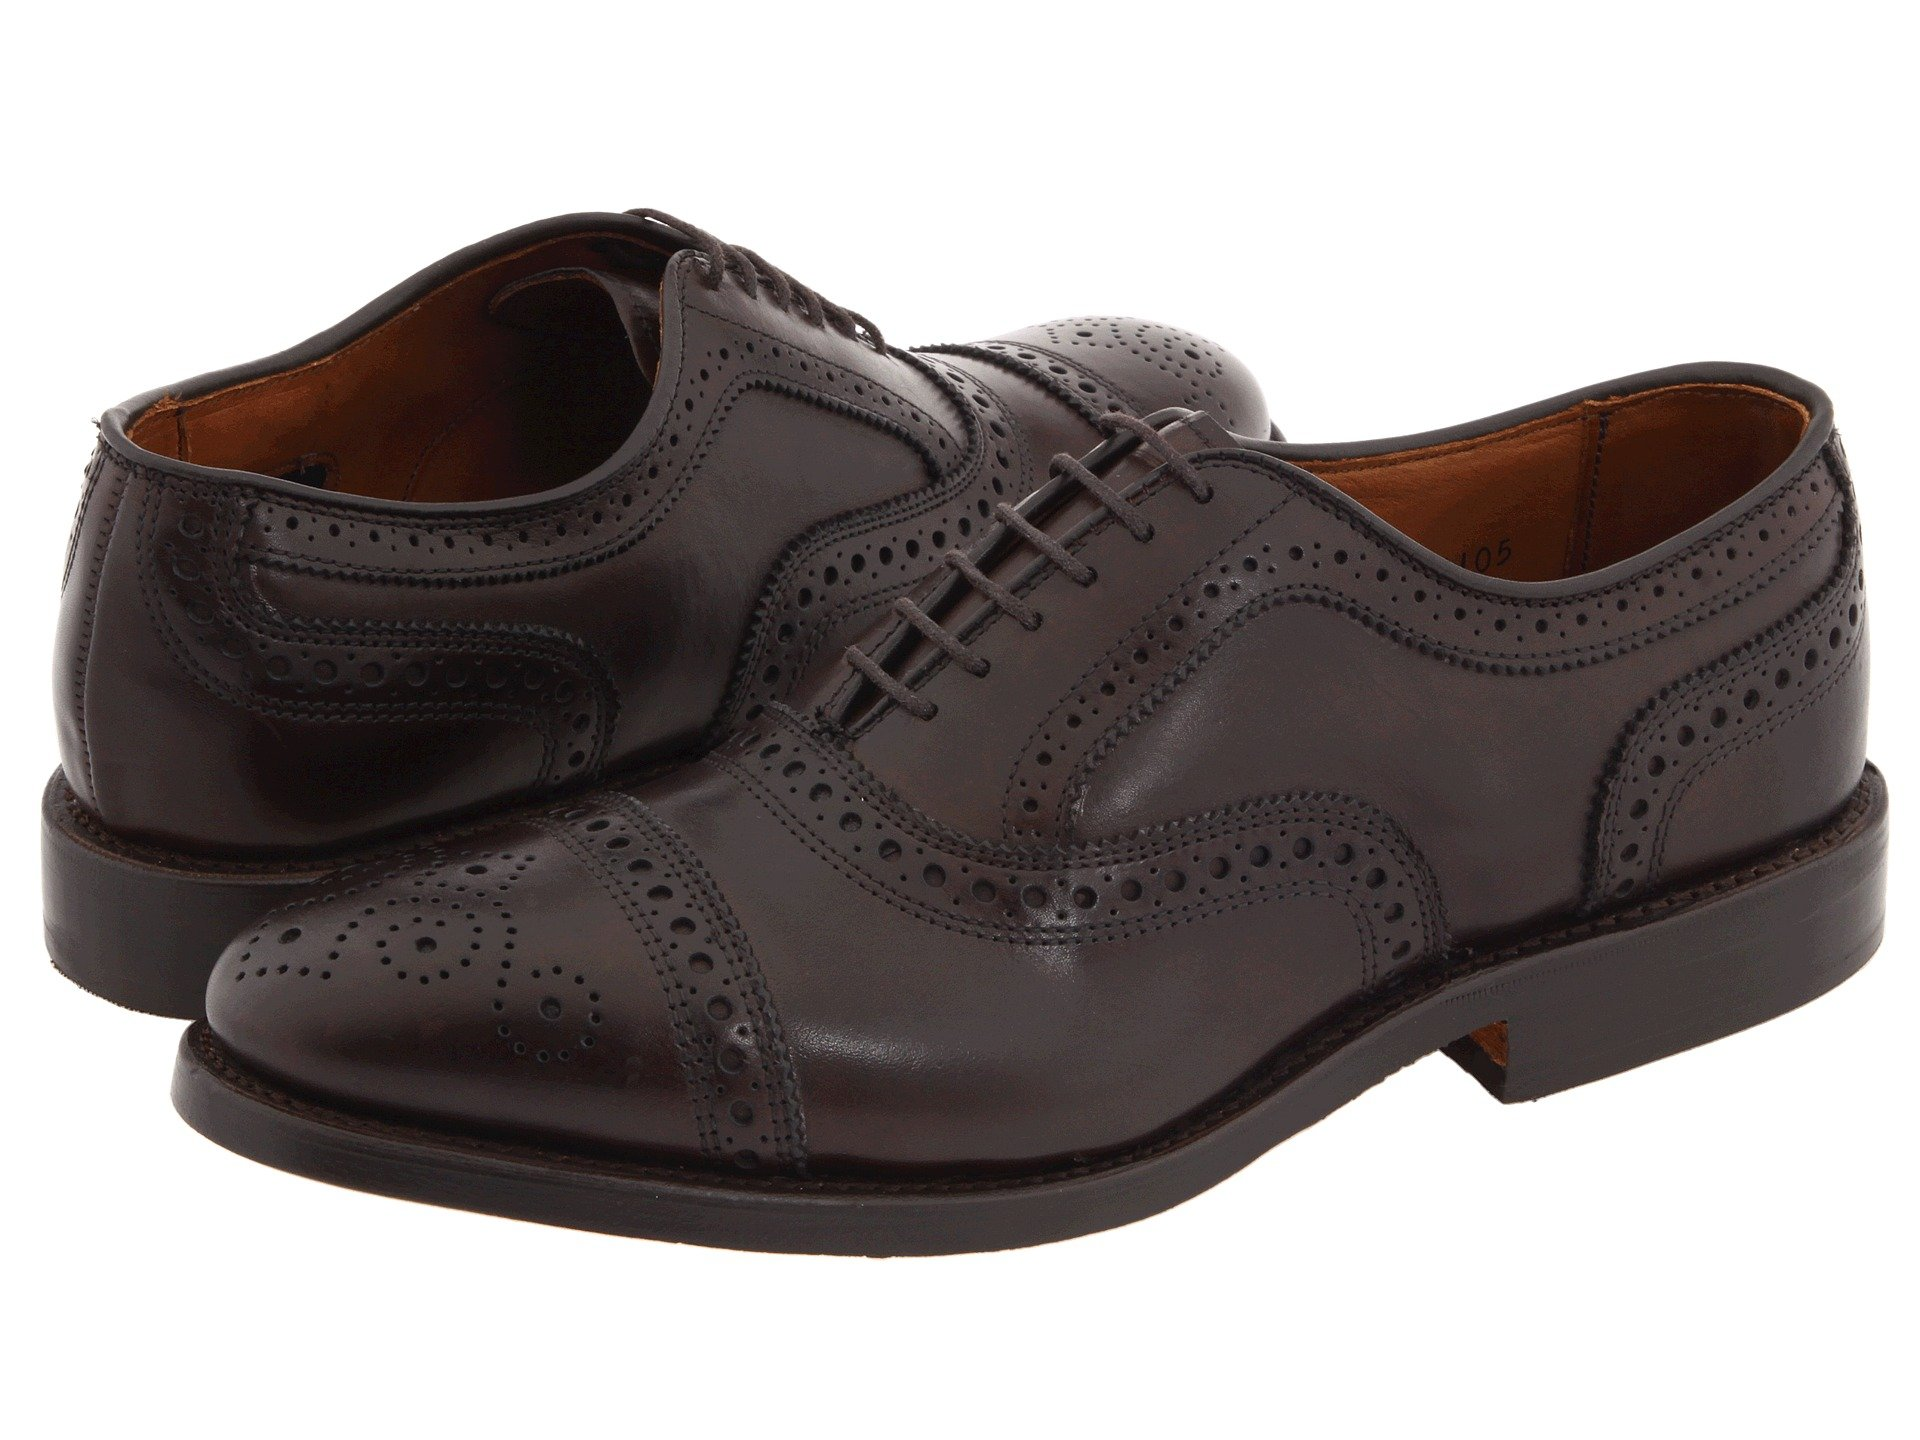 Allen Edmonds Strand in Dark Brown Burnished Calf